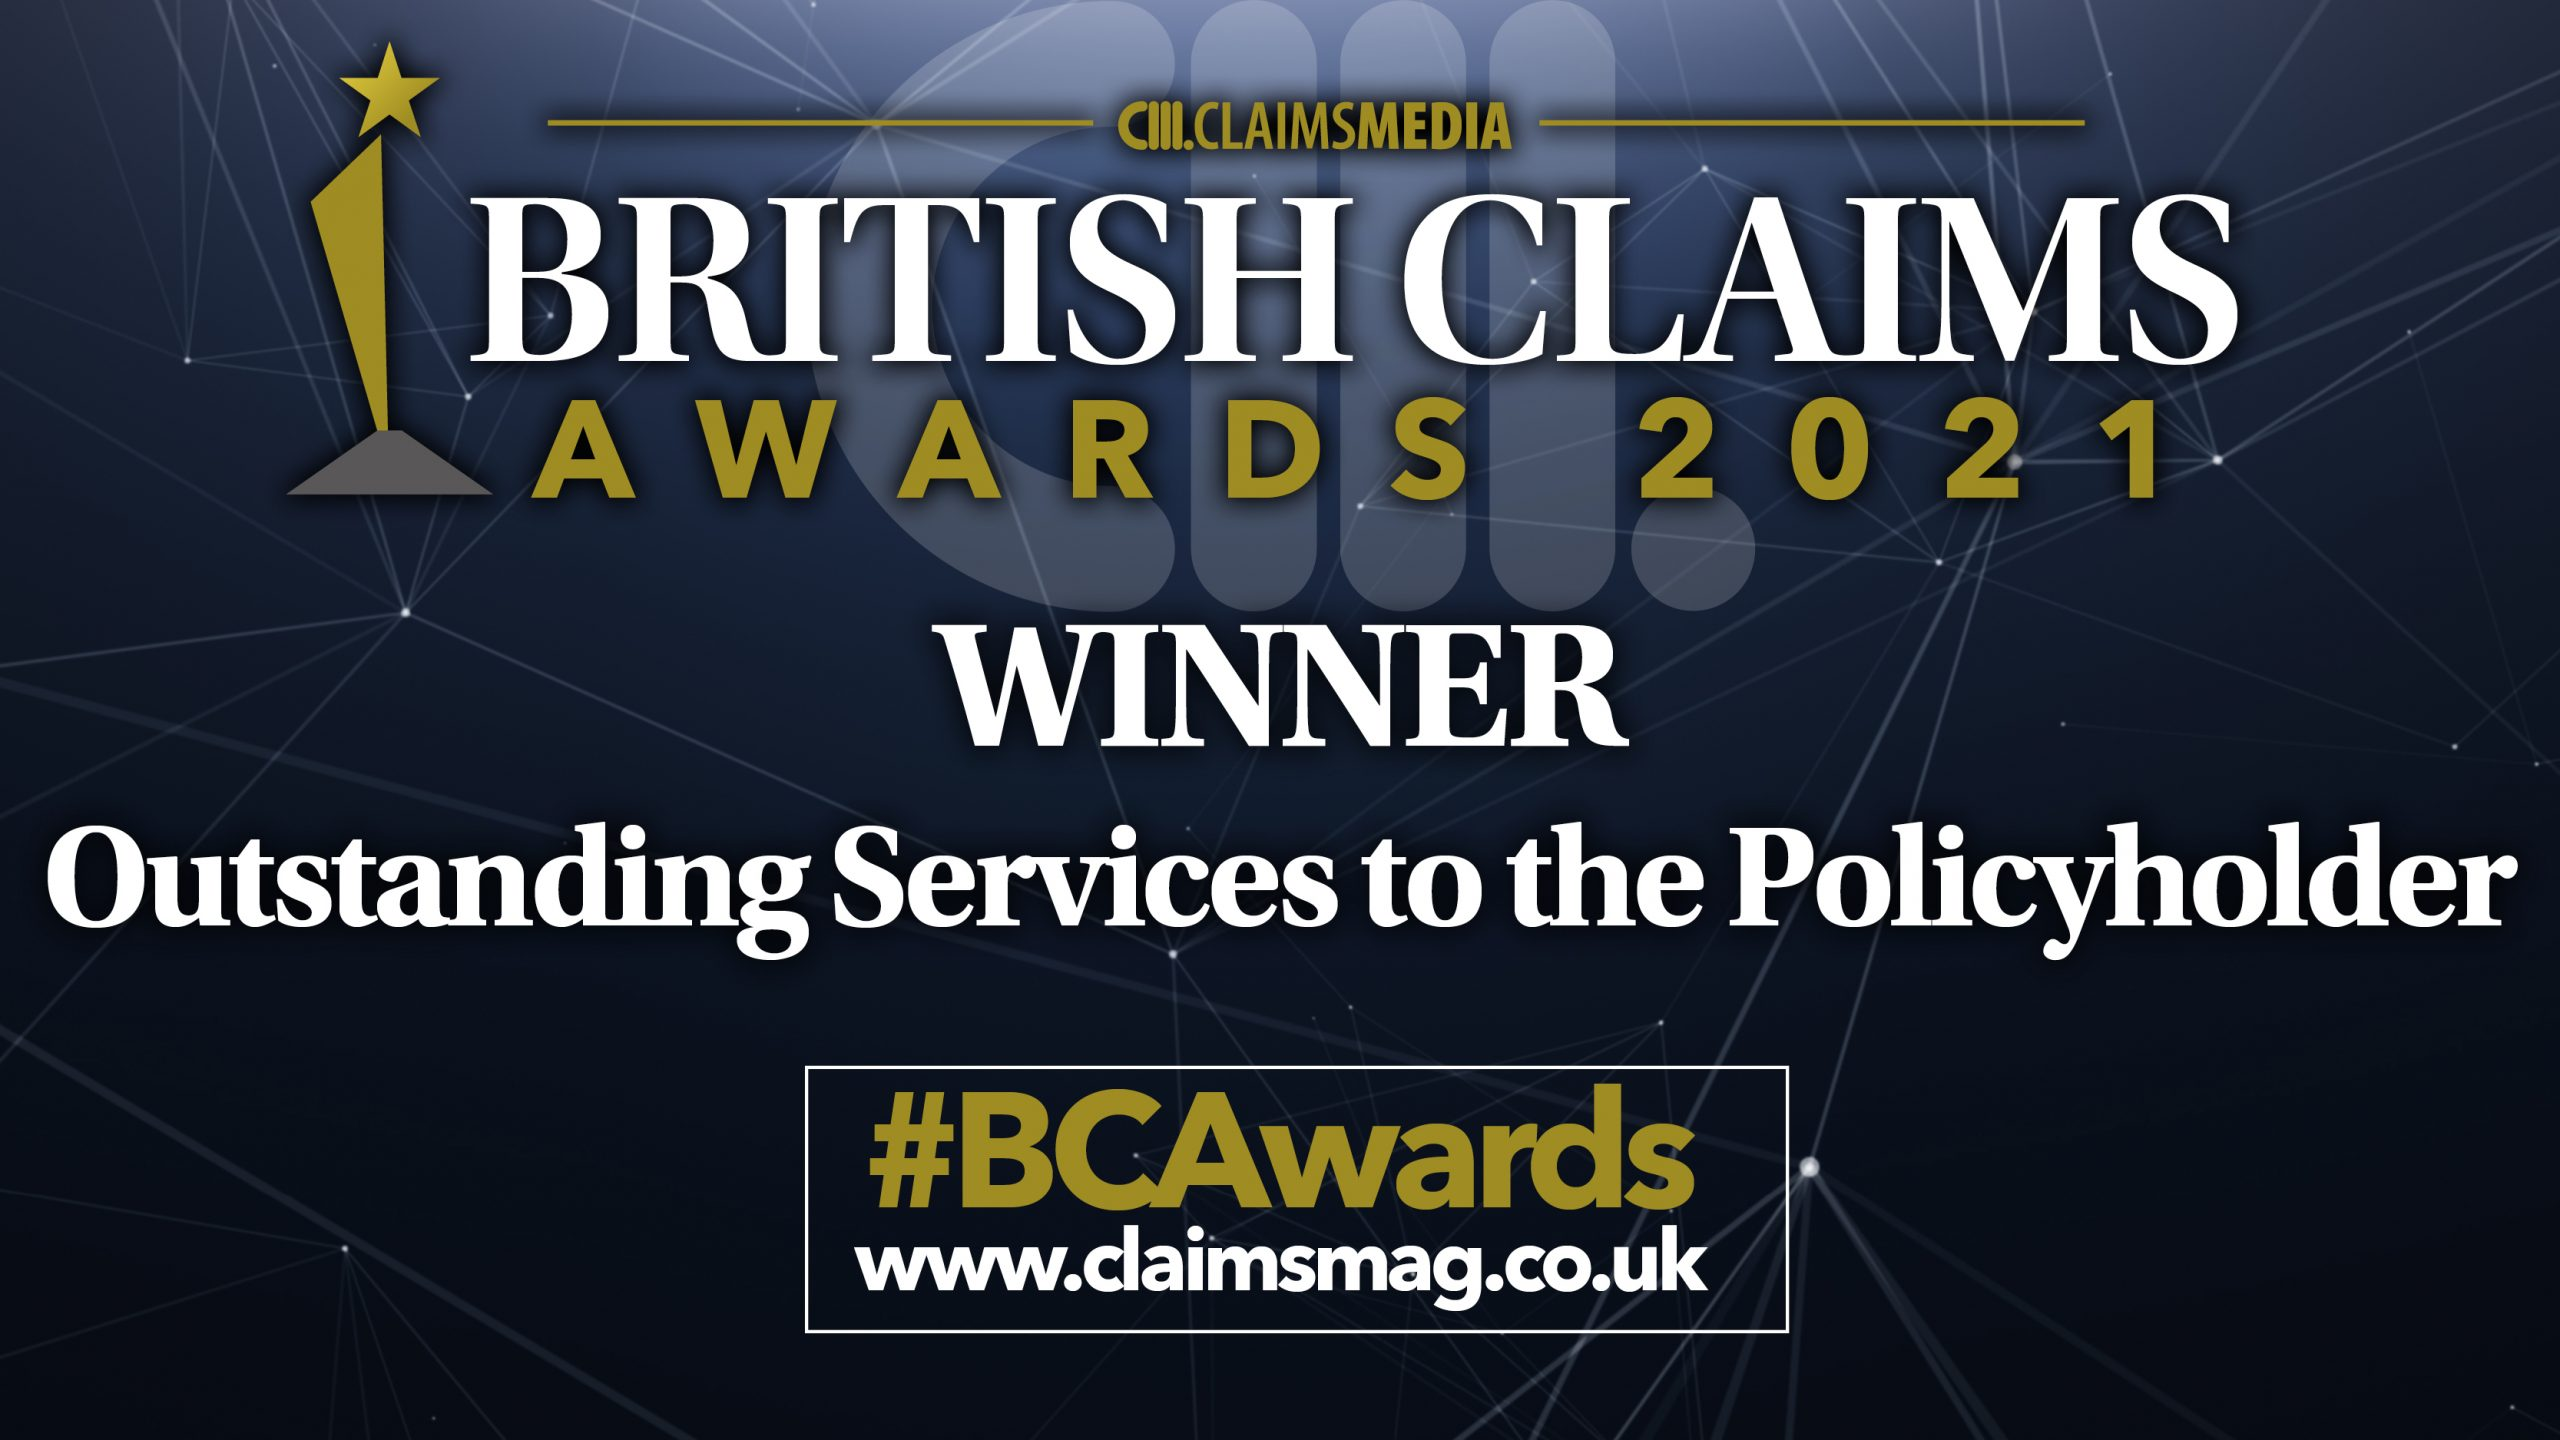 Outstanding service to policyholders winners banner